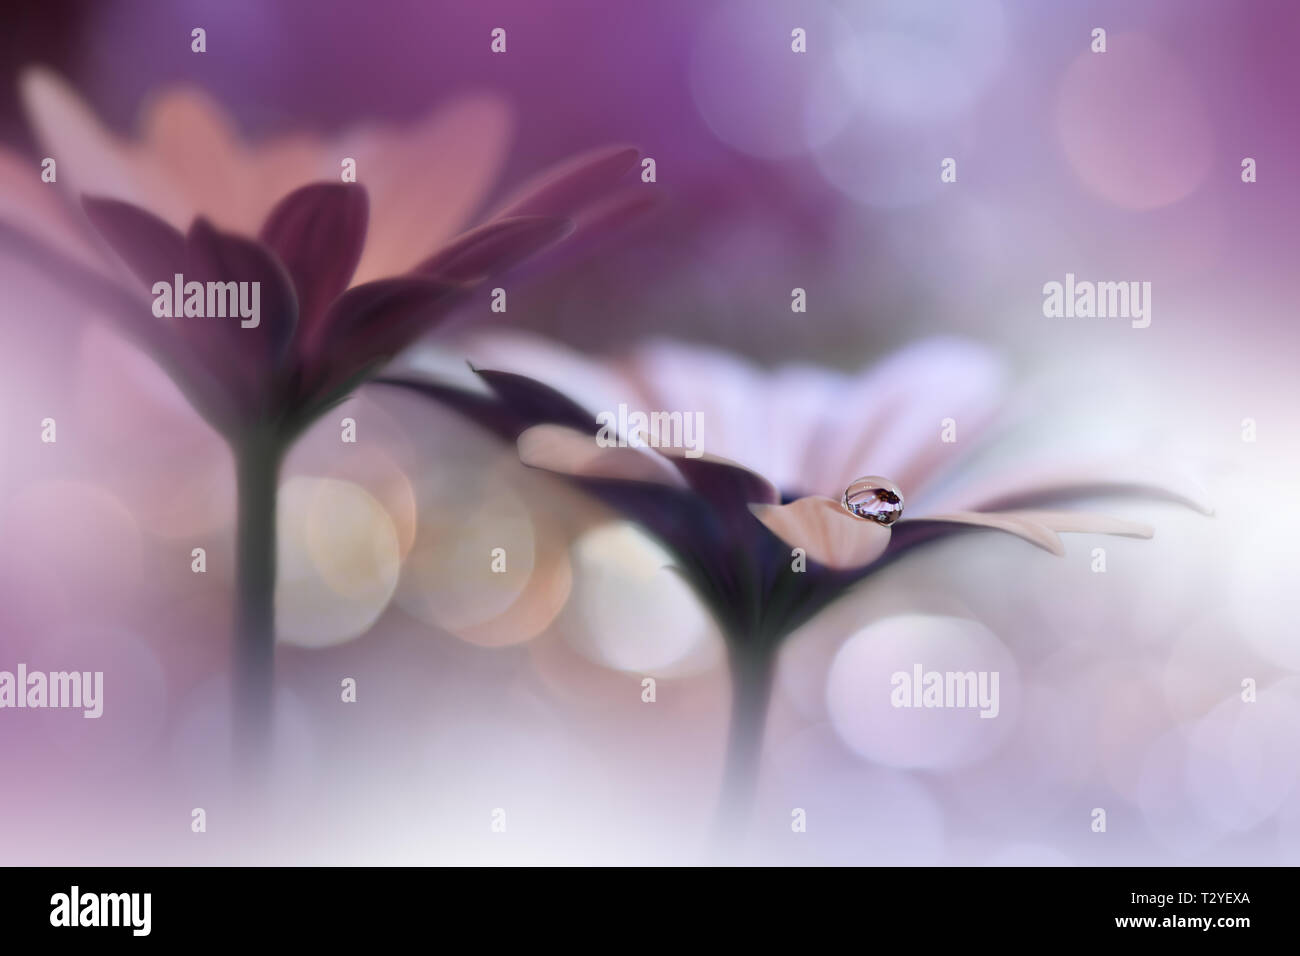 Beautiful Nature Background Amazing Spring Flowers Water Drop Extreme Close Up Macro Photography Abstract Fantasy Art Artistic Creative Wallpaper Pure Stock Photo Alamy